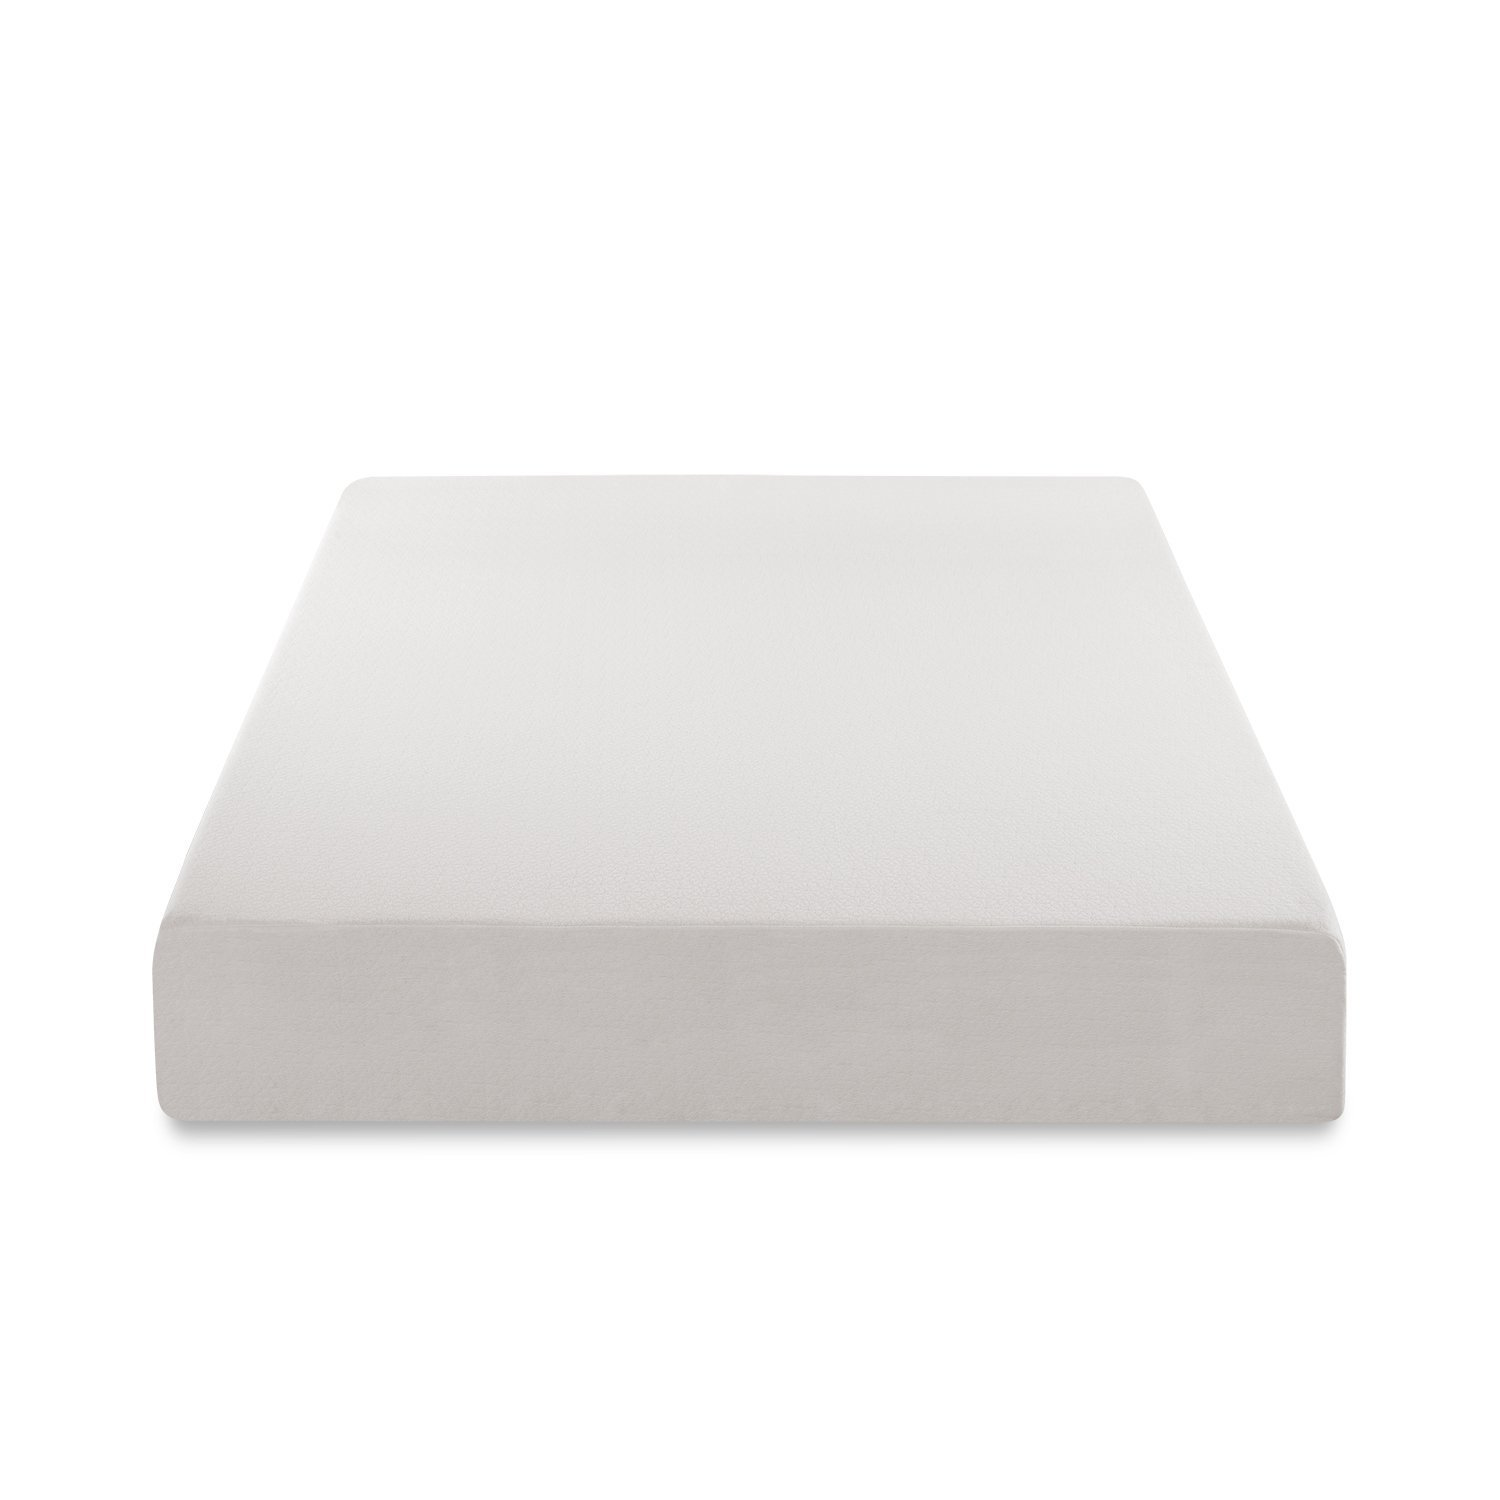 Zinus Memory Foam 12 Inch Green Tea Mattress Review